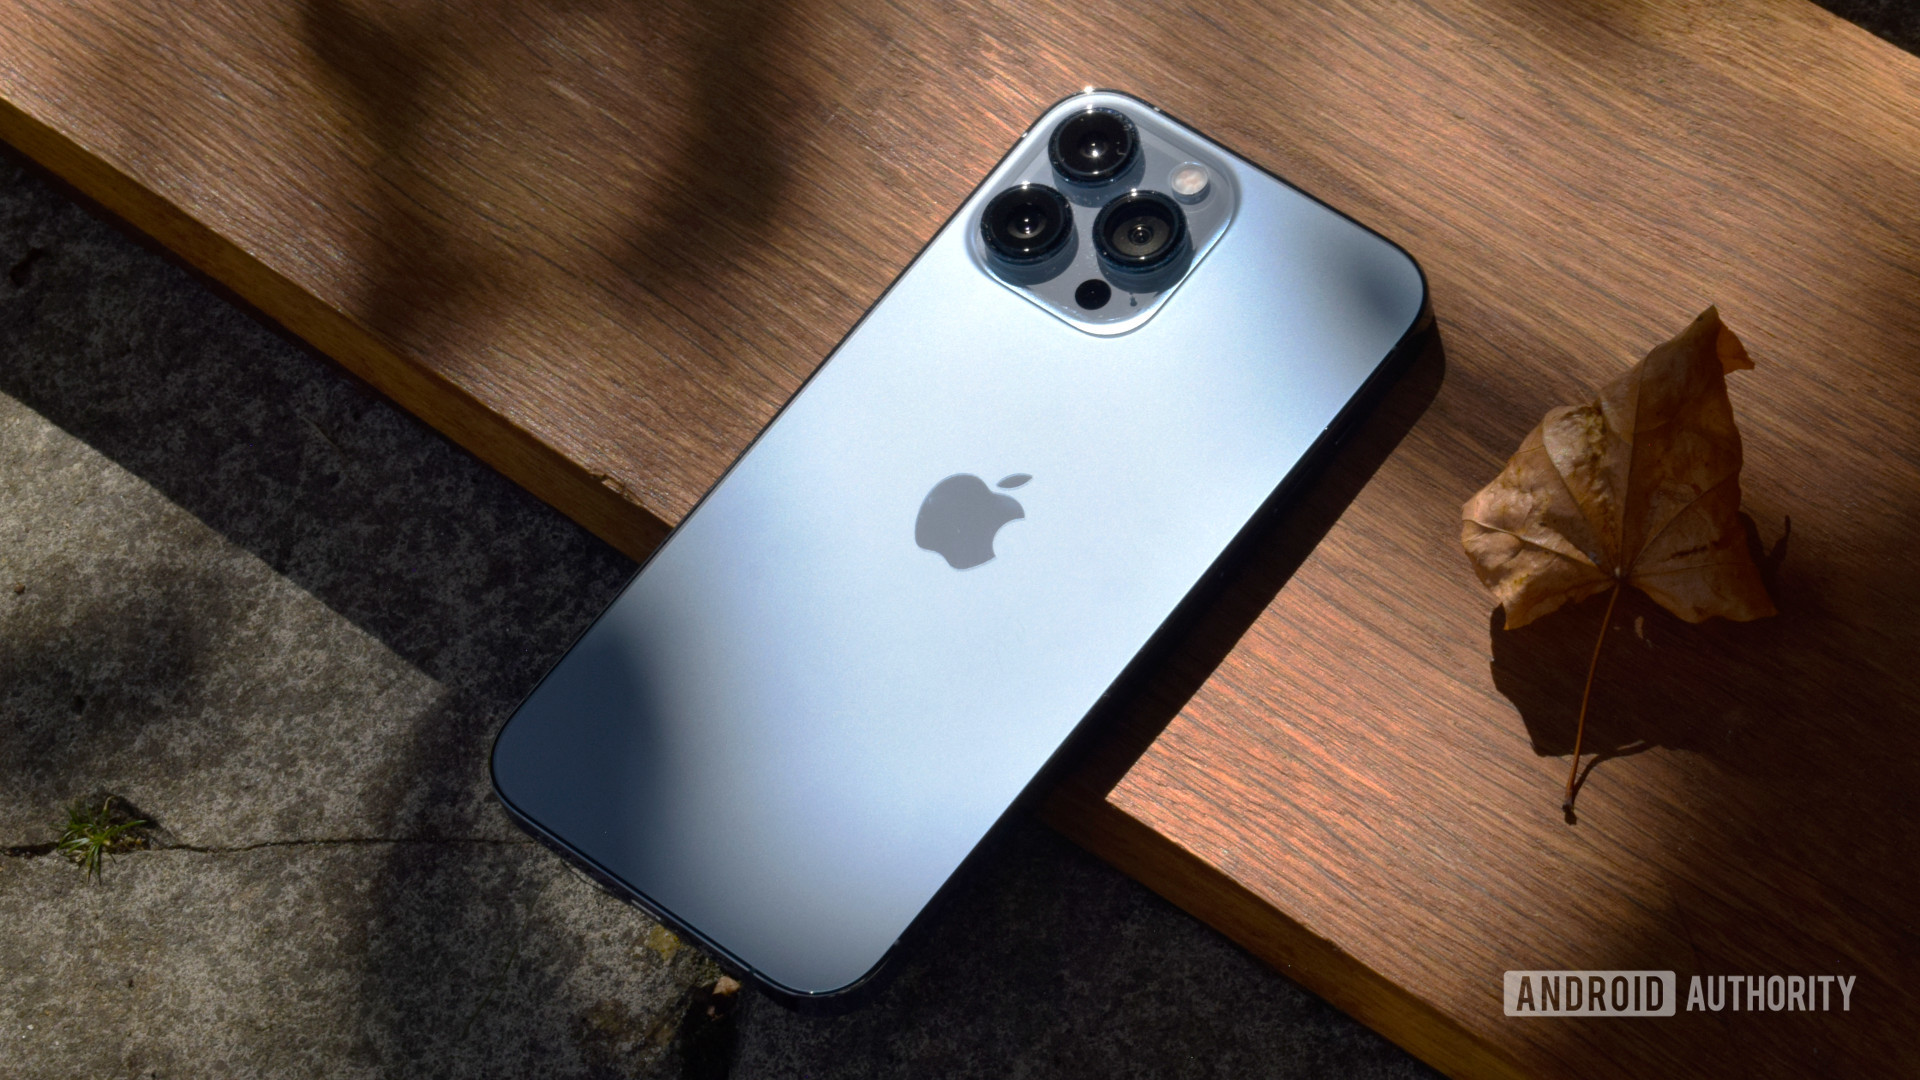 Apple iPhone 13 Pro Max rear view showing cameras.